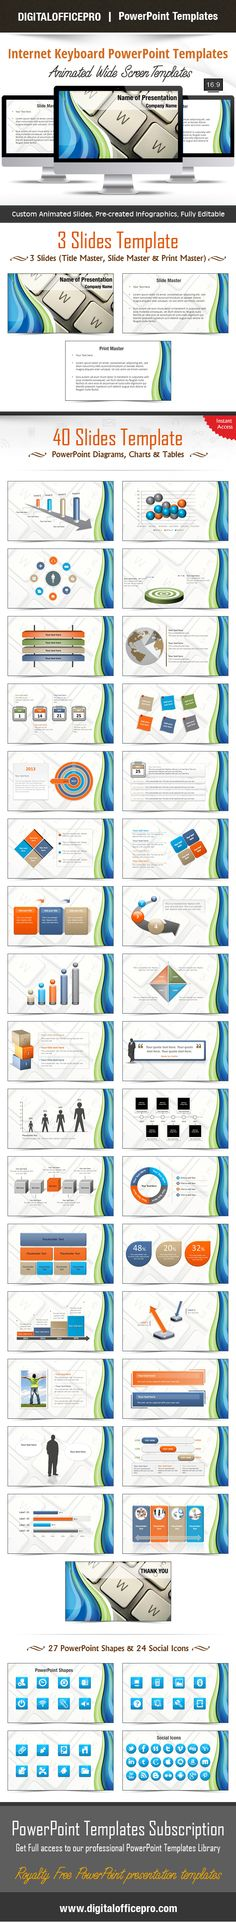 Powerpoint design, flow chart Presentations Pinterest Charts - visitor sign in sheet template